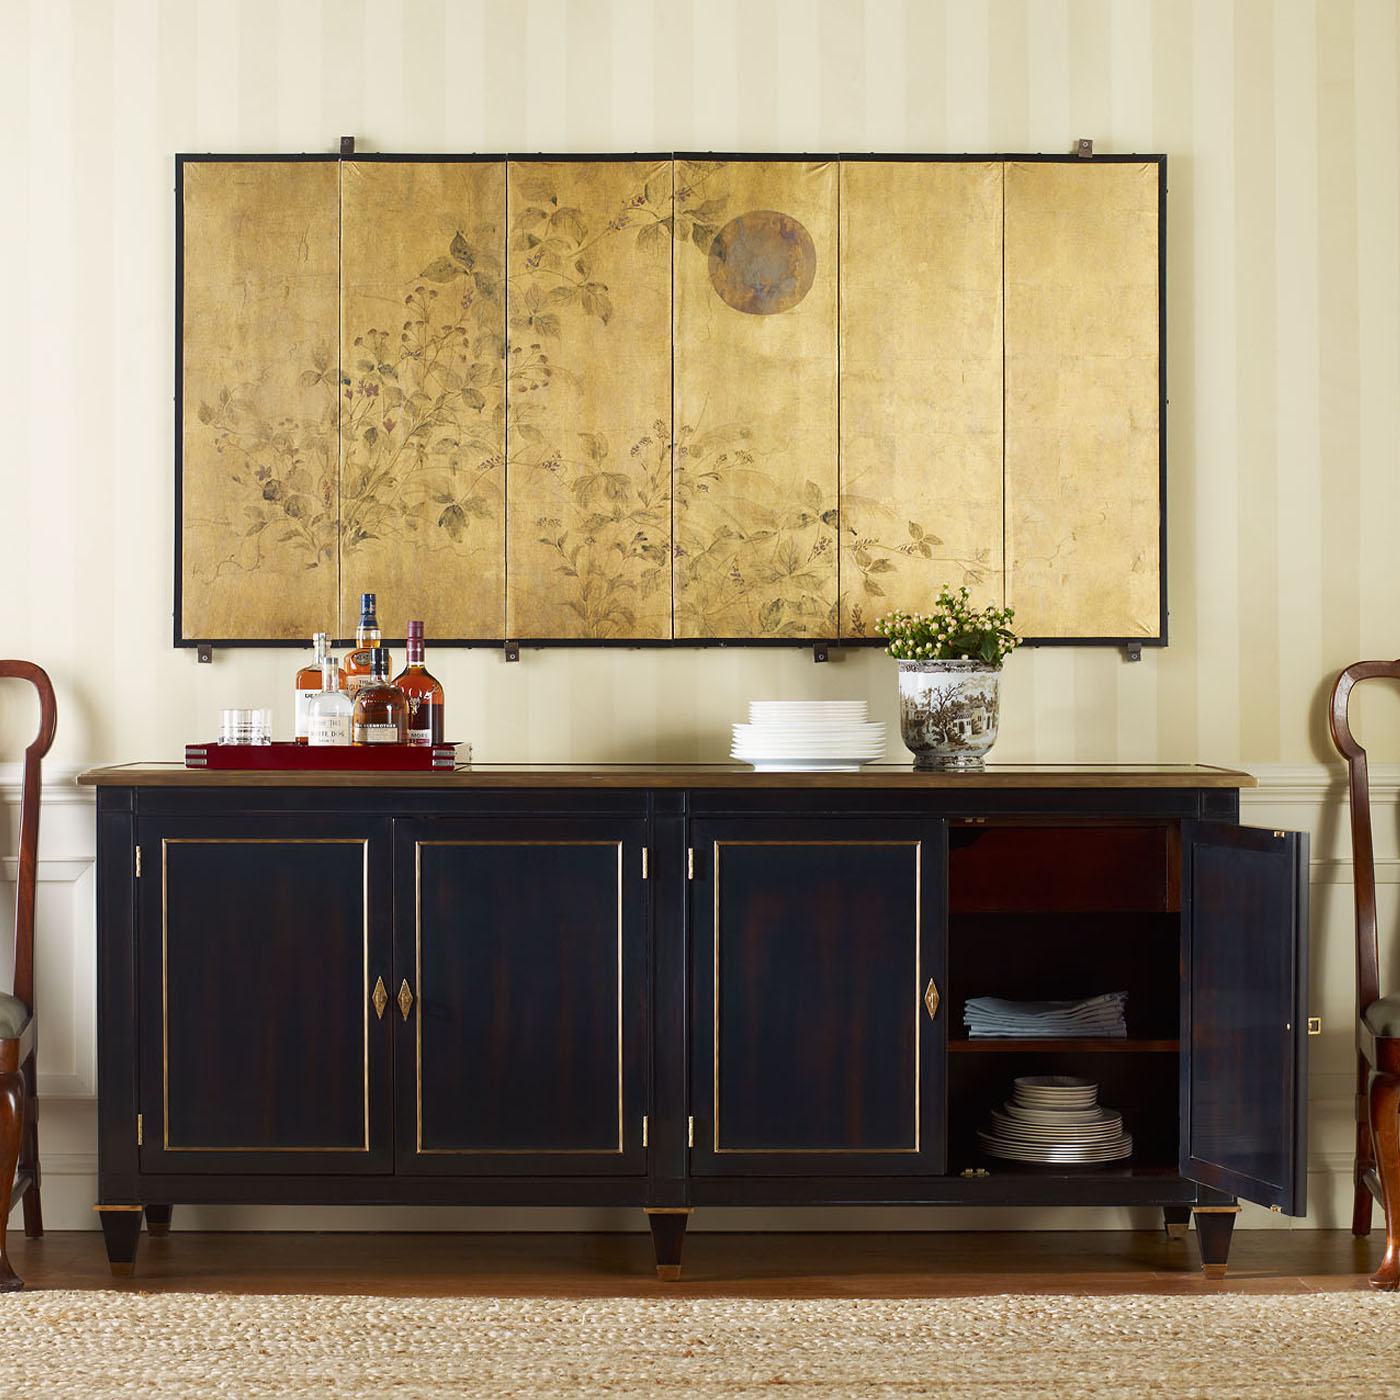 Cabinets - Modern Living Room Furniture & Accessories | Baker Furniture